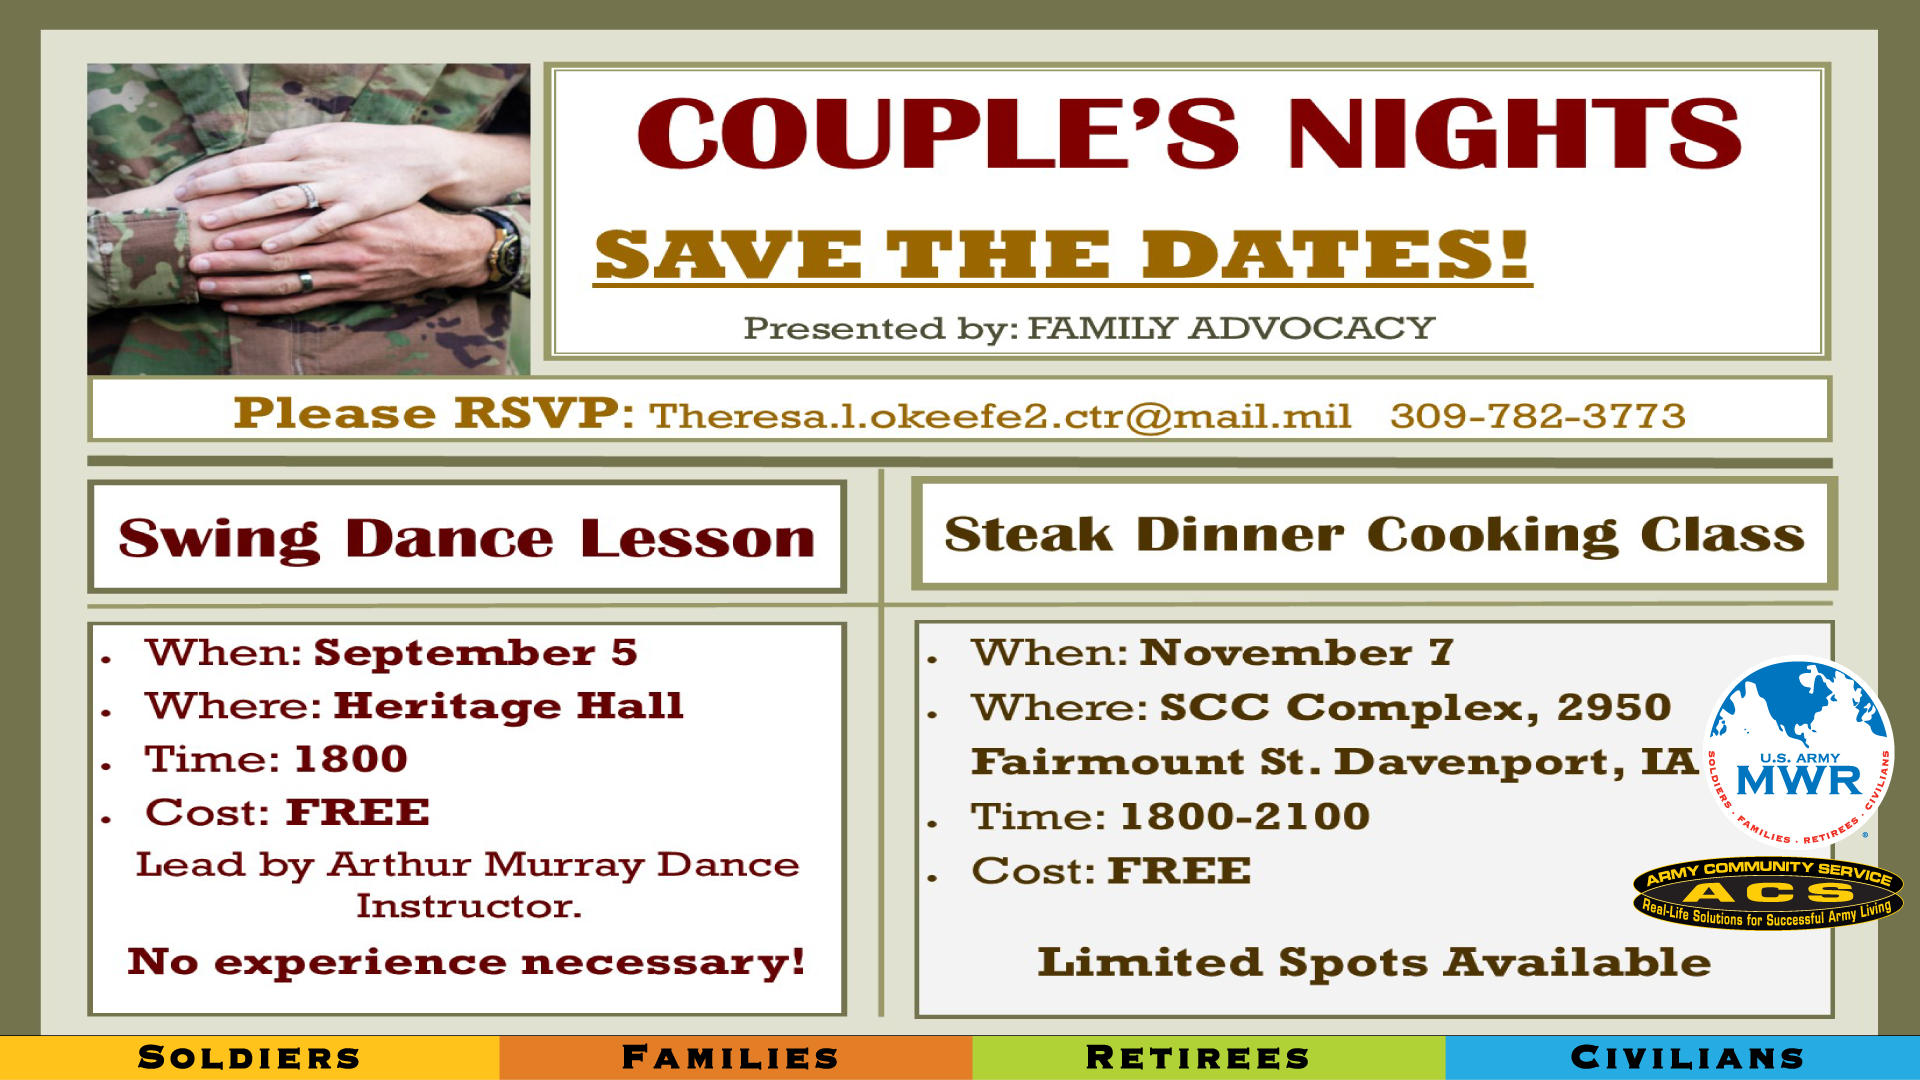 Couple's Nights: Swing Dance Lesson